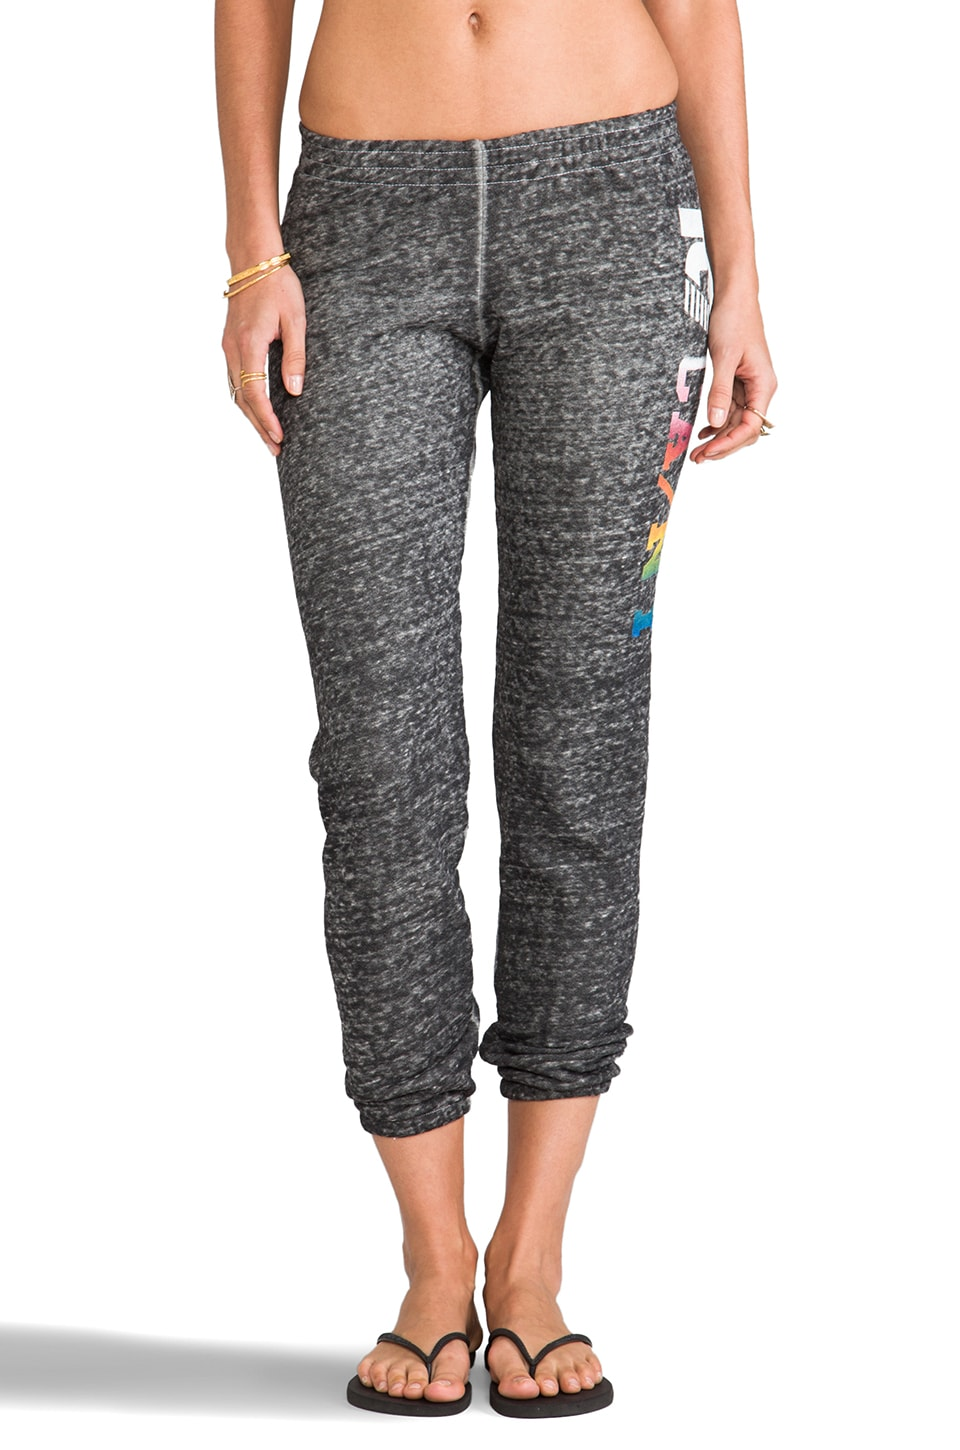 Rebel Yell CA/NY Skinny Pant in Heather Gray